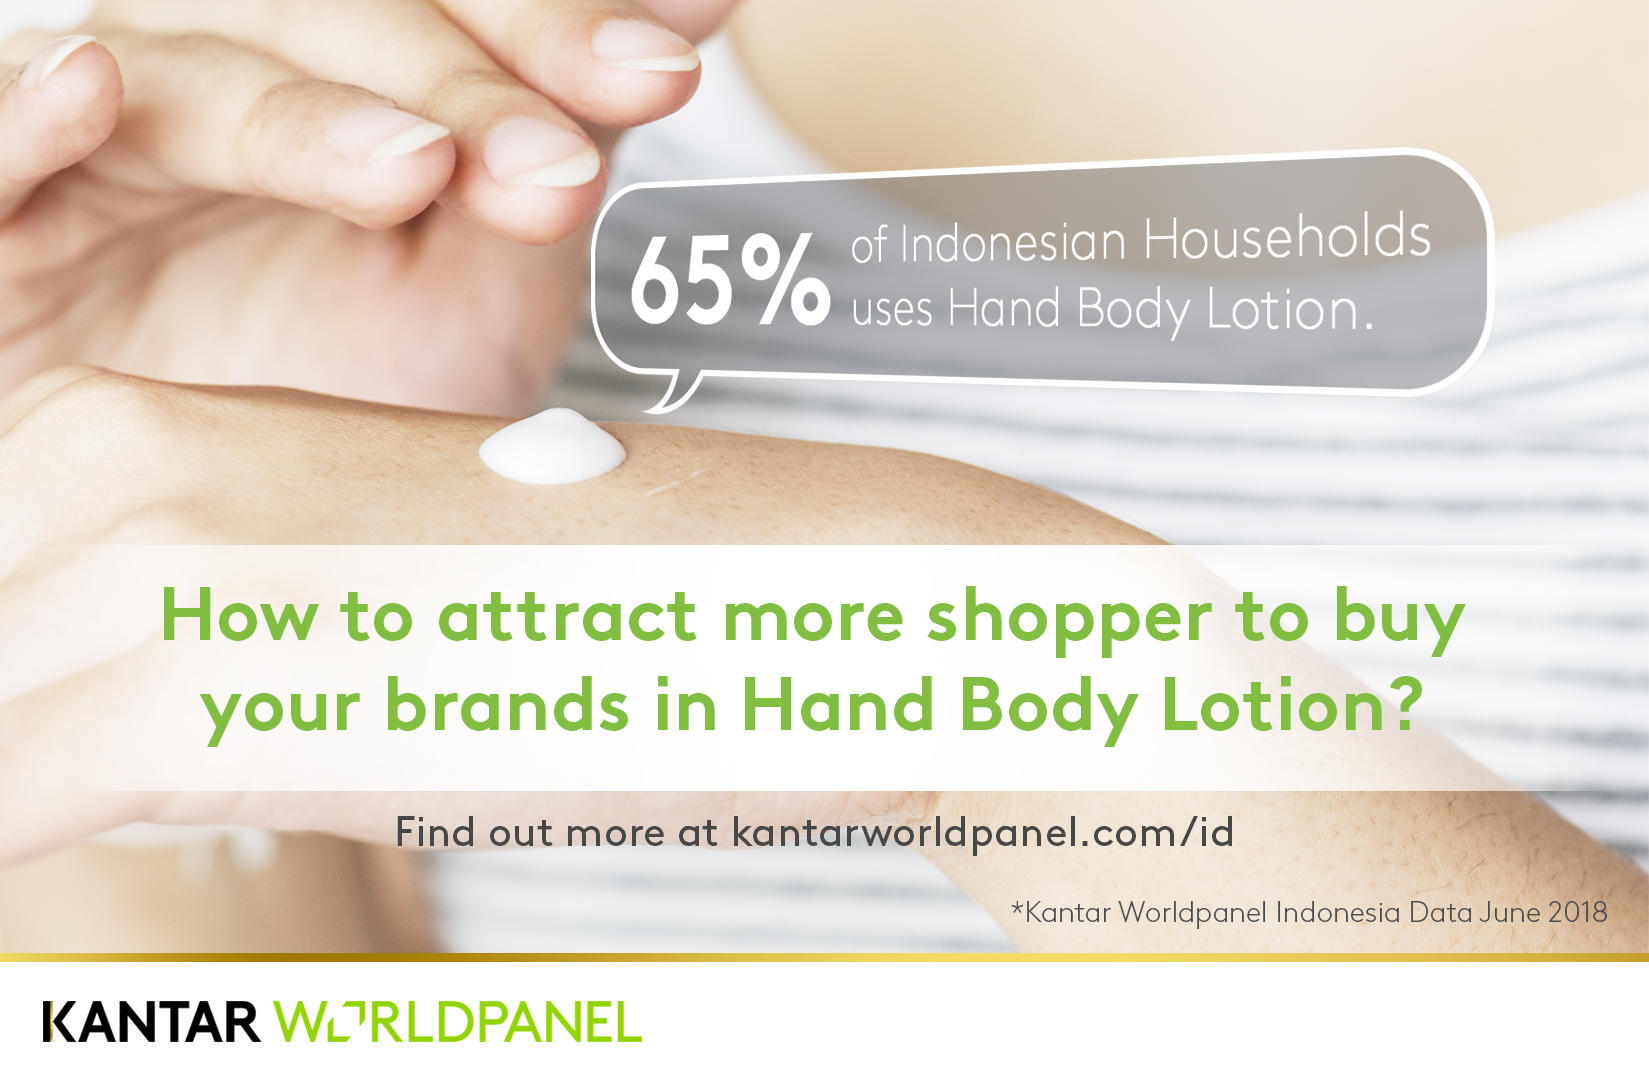 Kantar Worldpanel Trivia Series - Hand Body Lotion